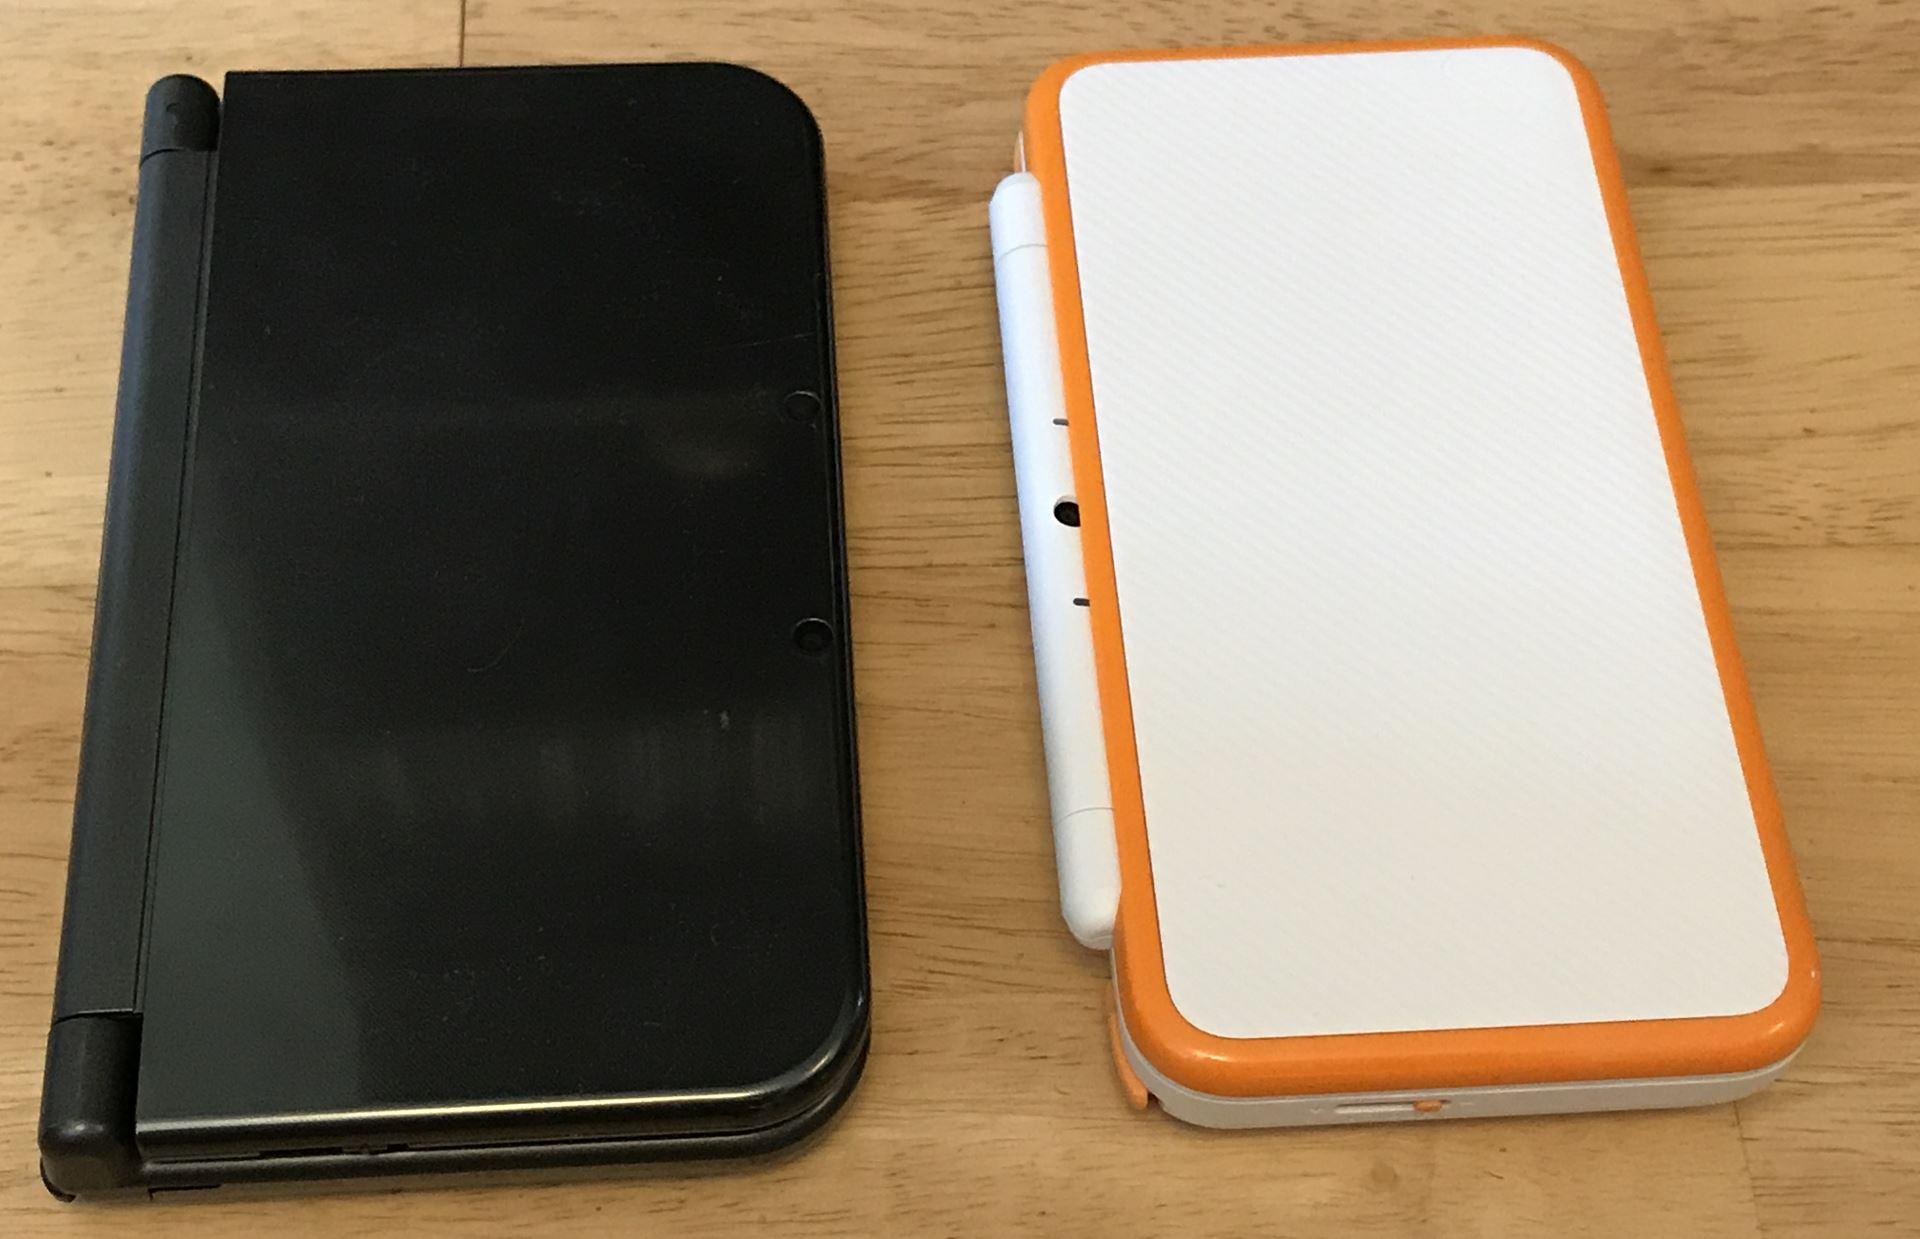 2DS XL vs 3DS XL